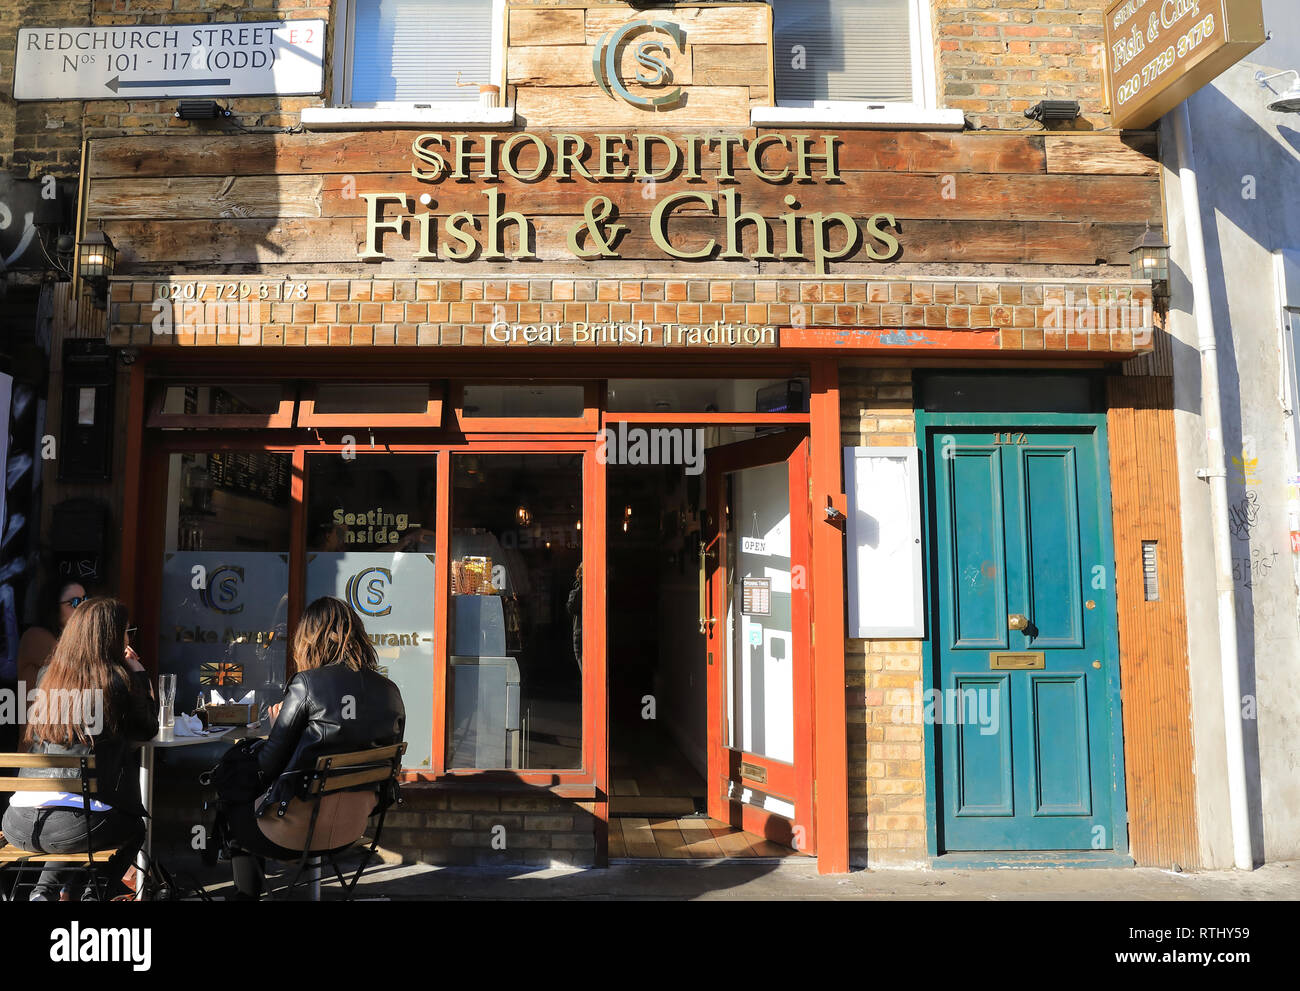 Shoreditch Fish & Chips, in Bethnal Green, in east London, UK - Stock Image